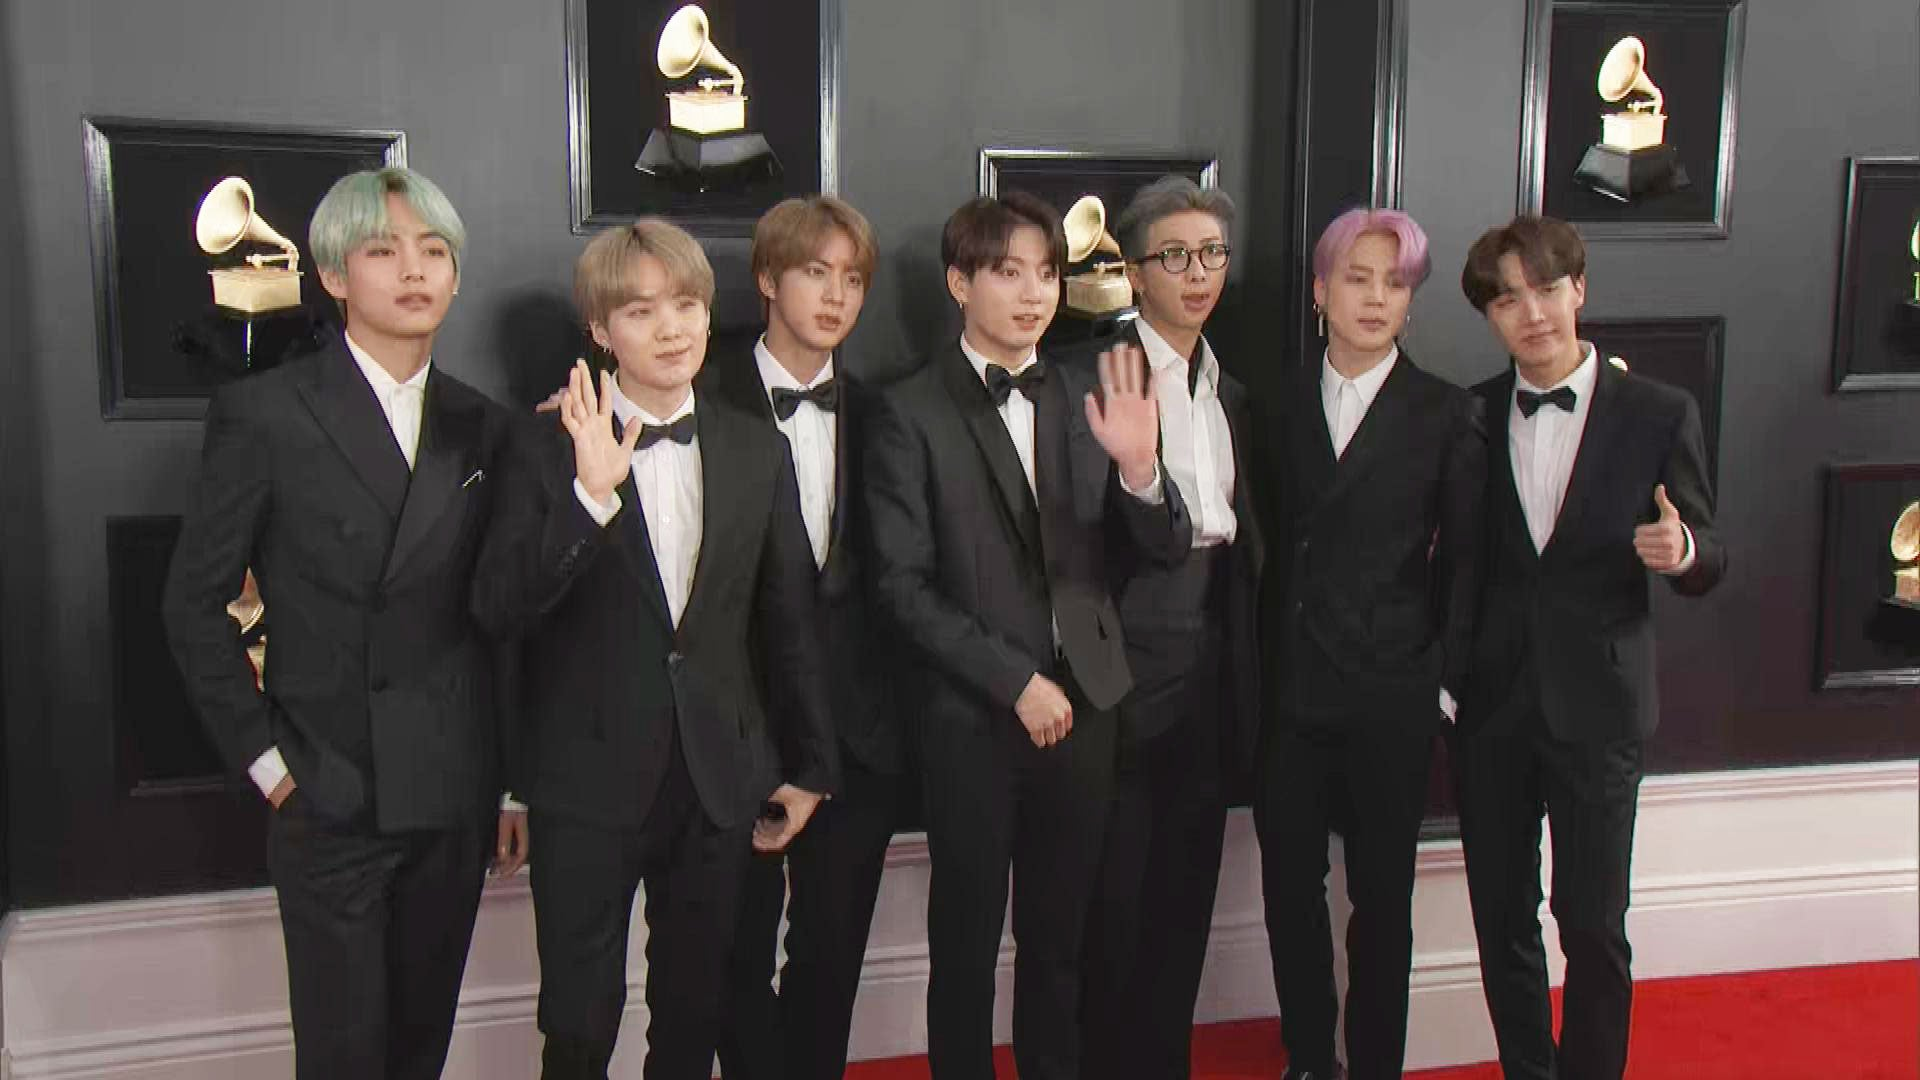 BTS Makes History as First K-Pop Band to Go Platinum in the US